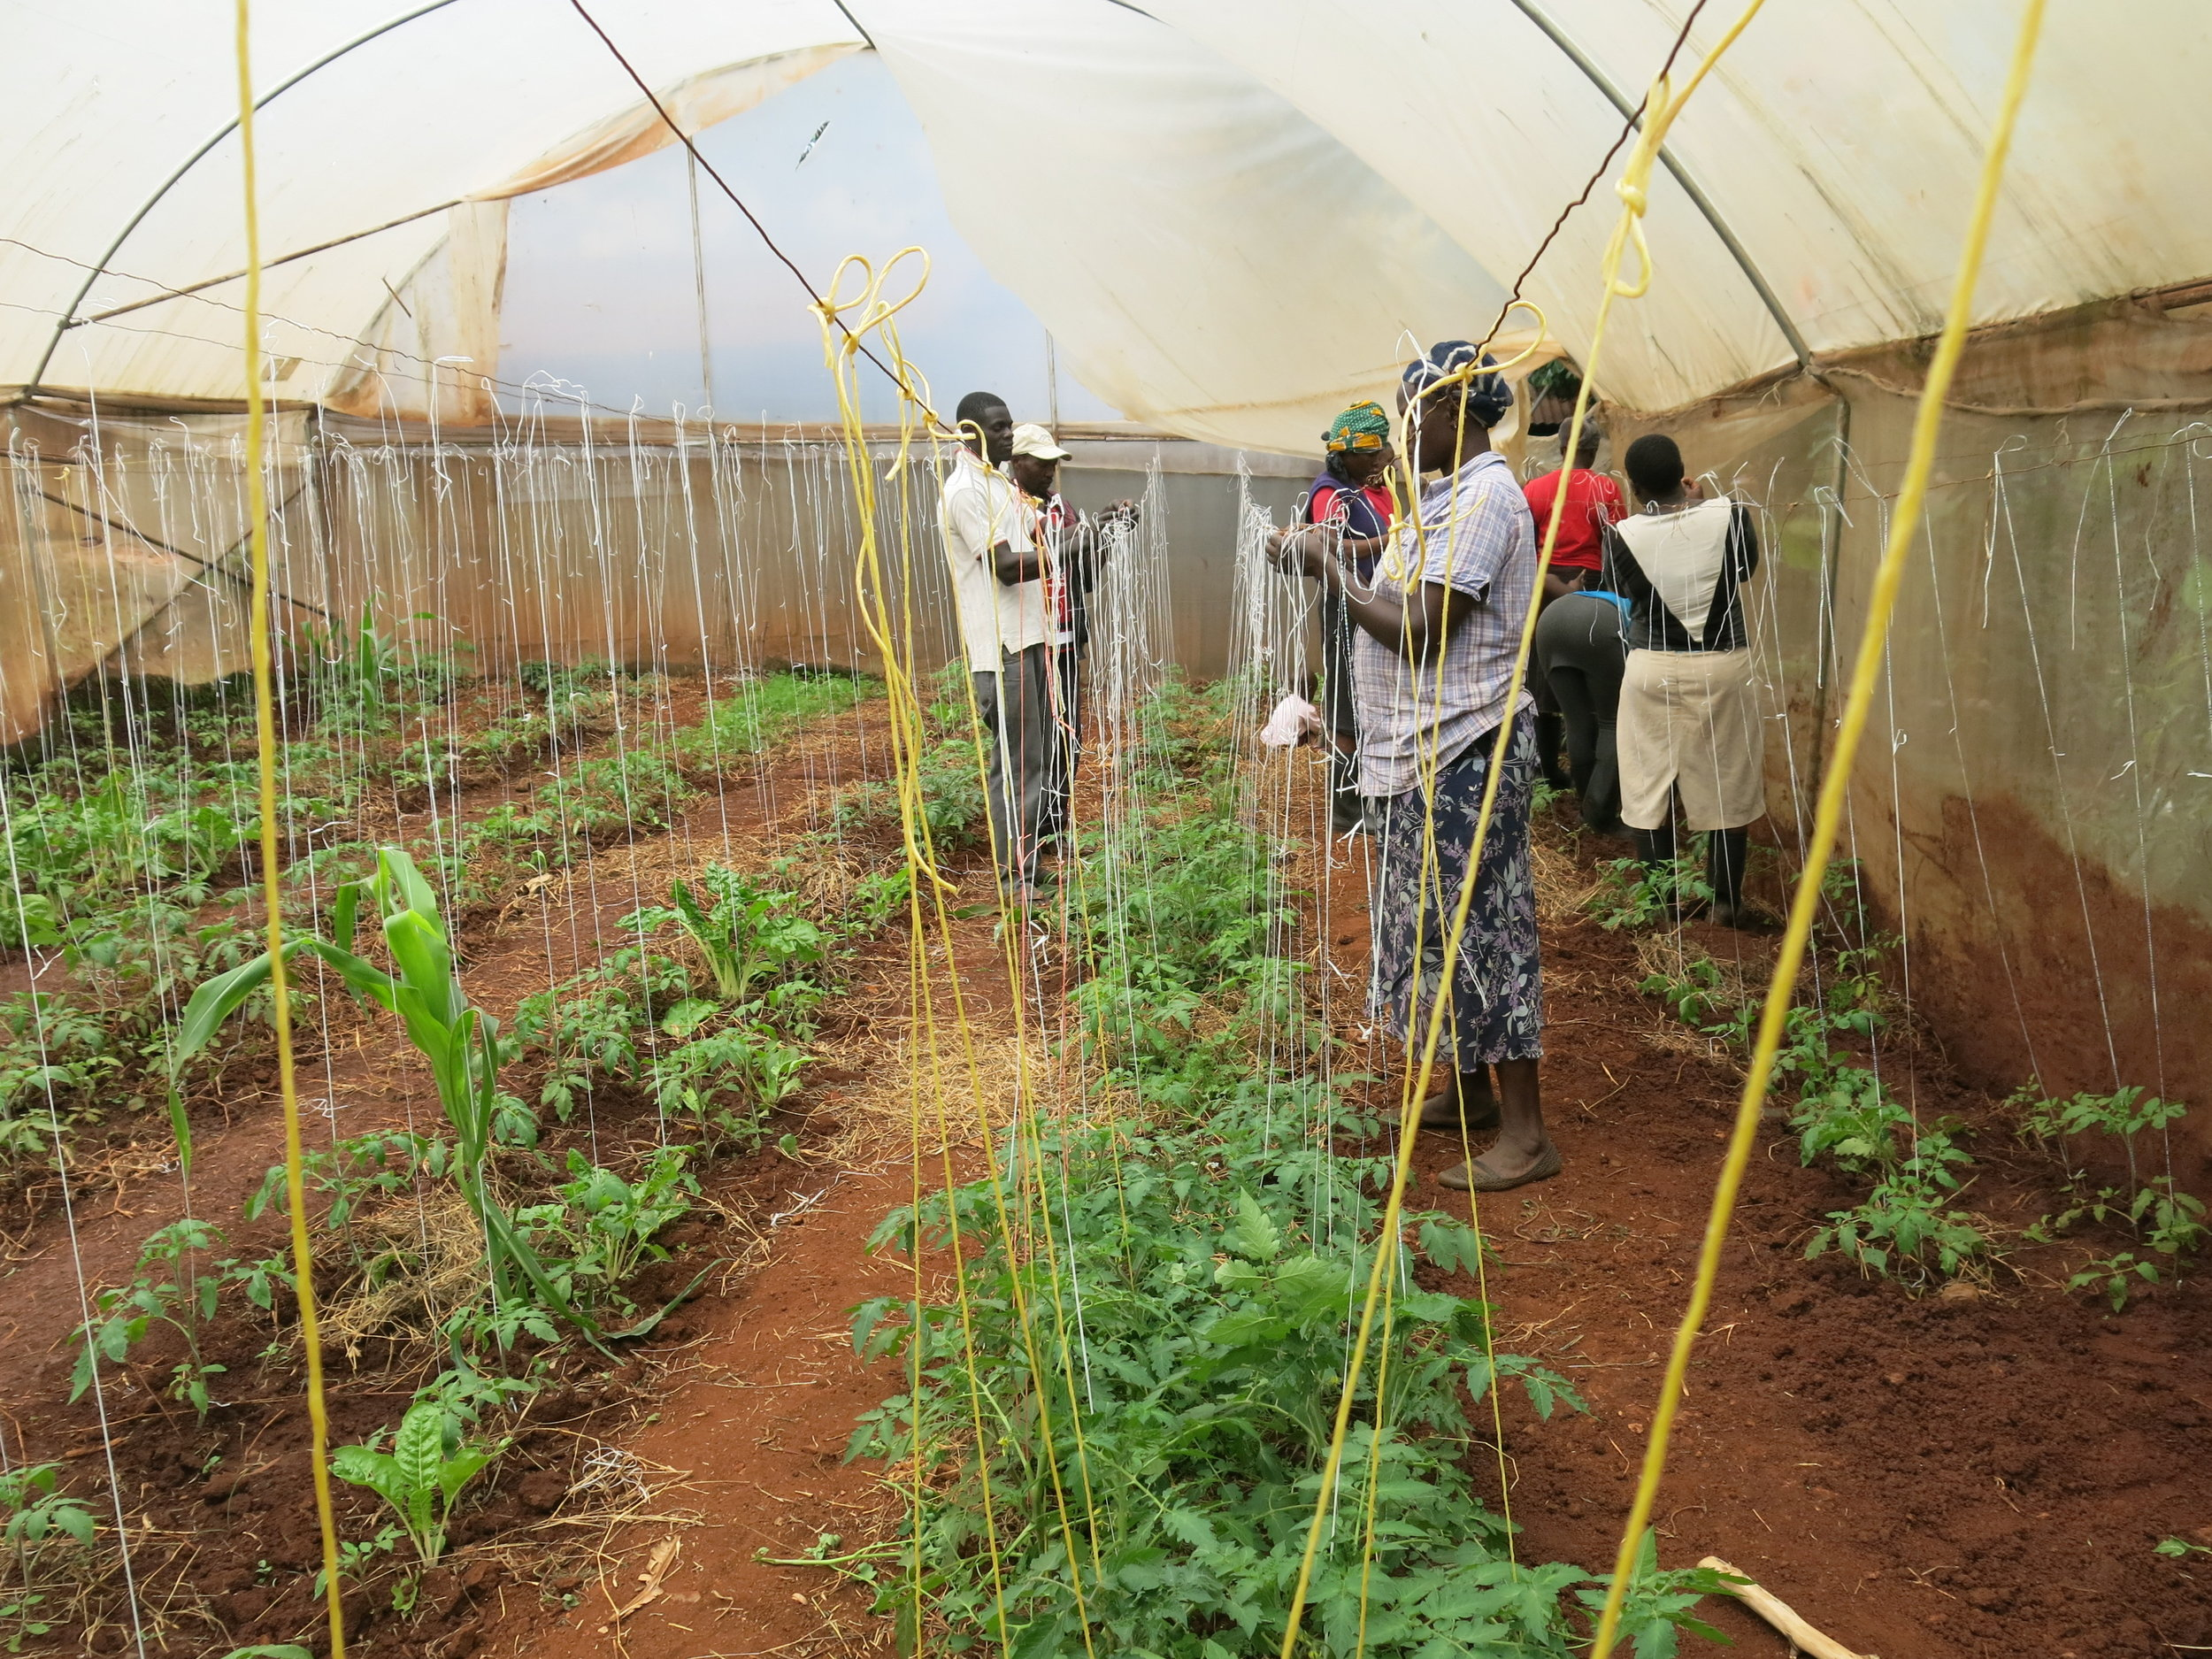 Above: Tomatoes in the greenhouse being tied up with leftover scraps from a hessian factory located close by